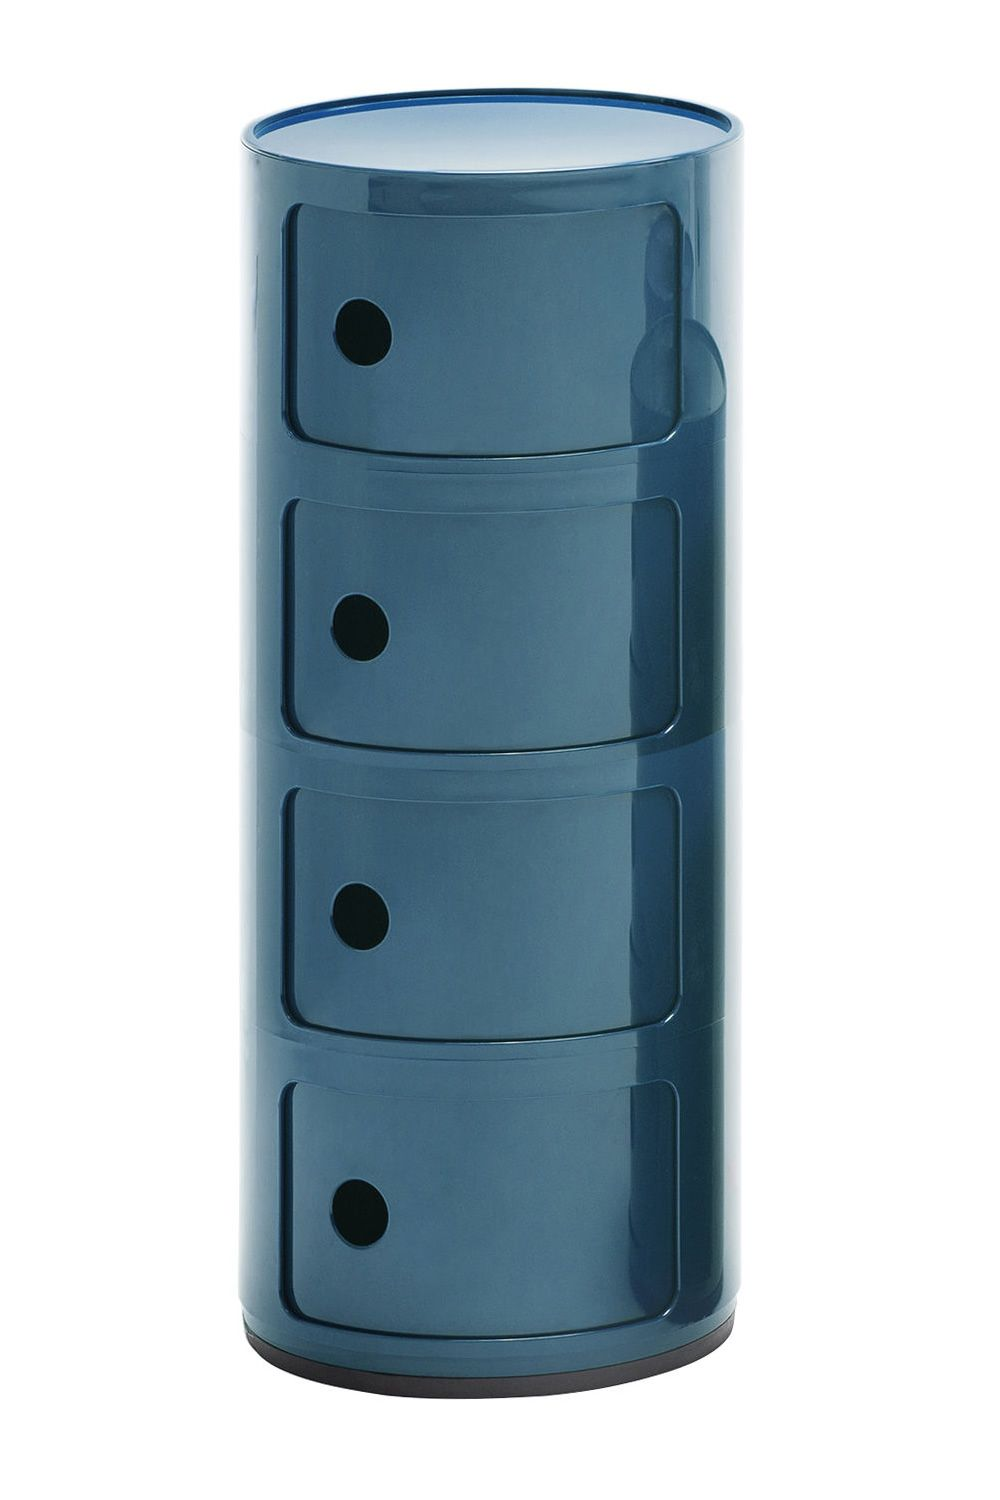 Design Kartell container, blue colour